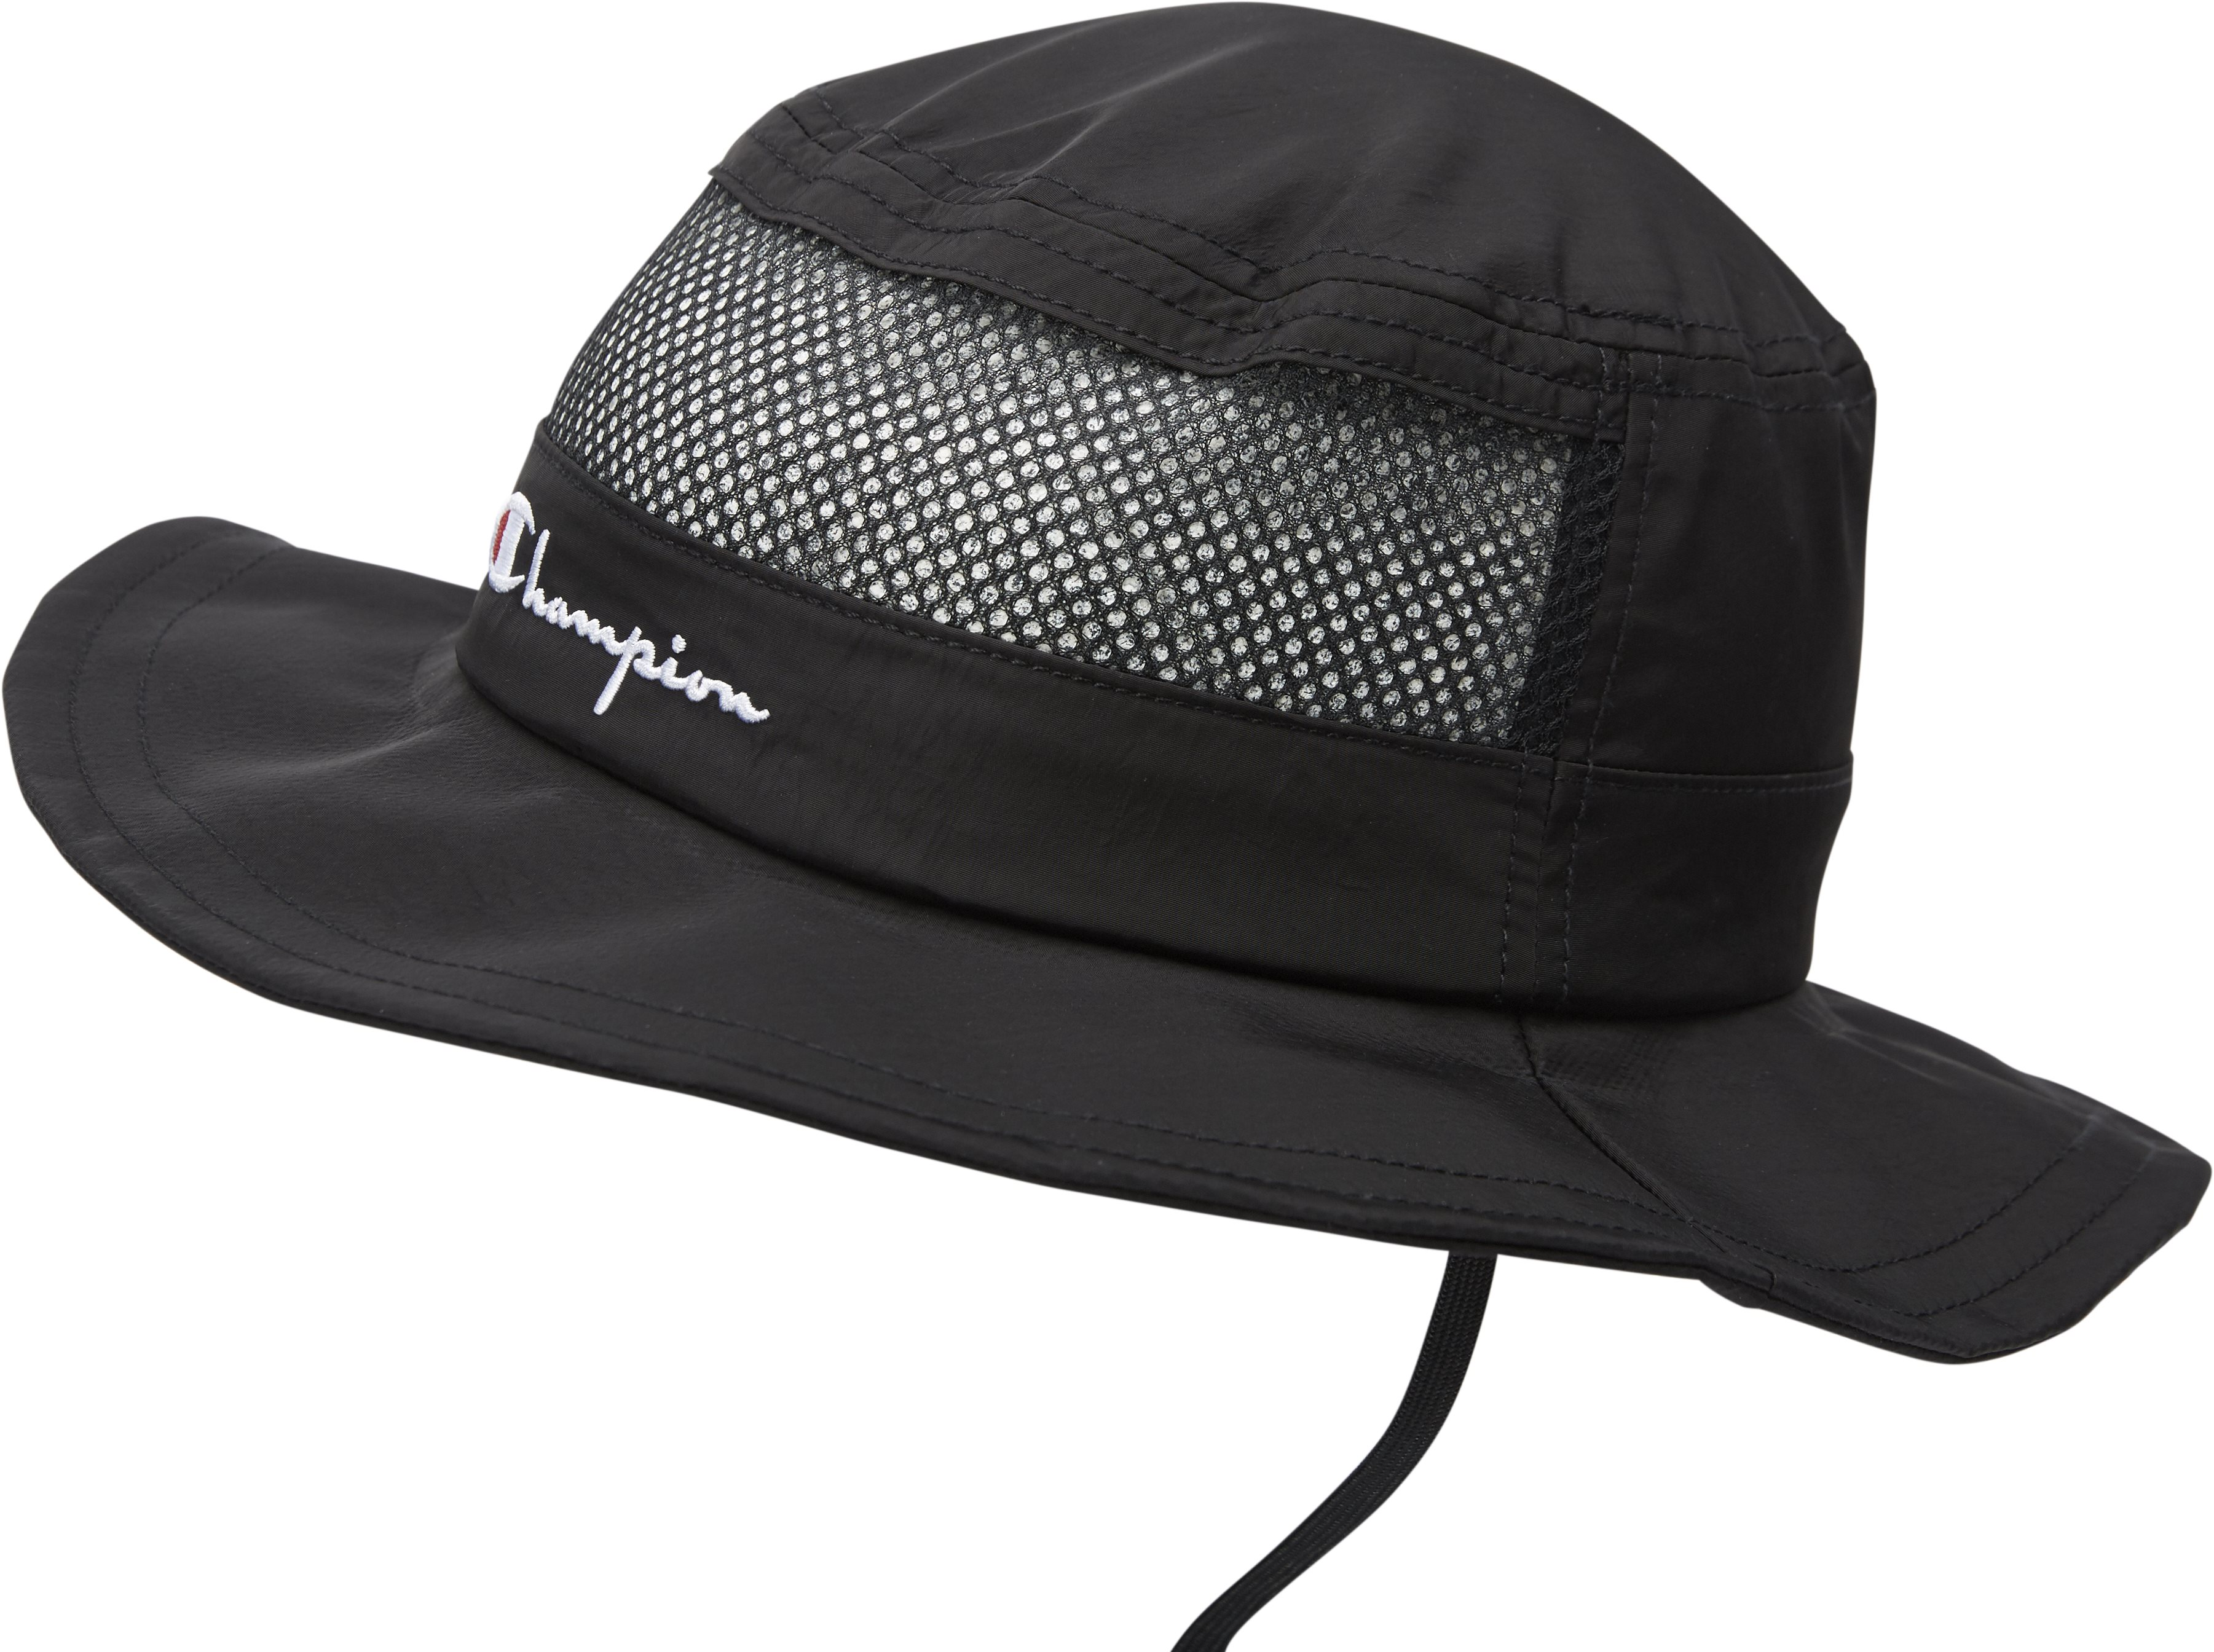 Ribstock Bucket Hat - Caps - Sort